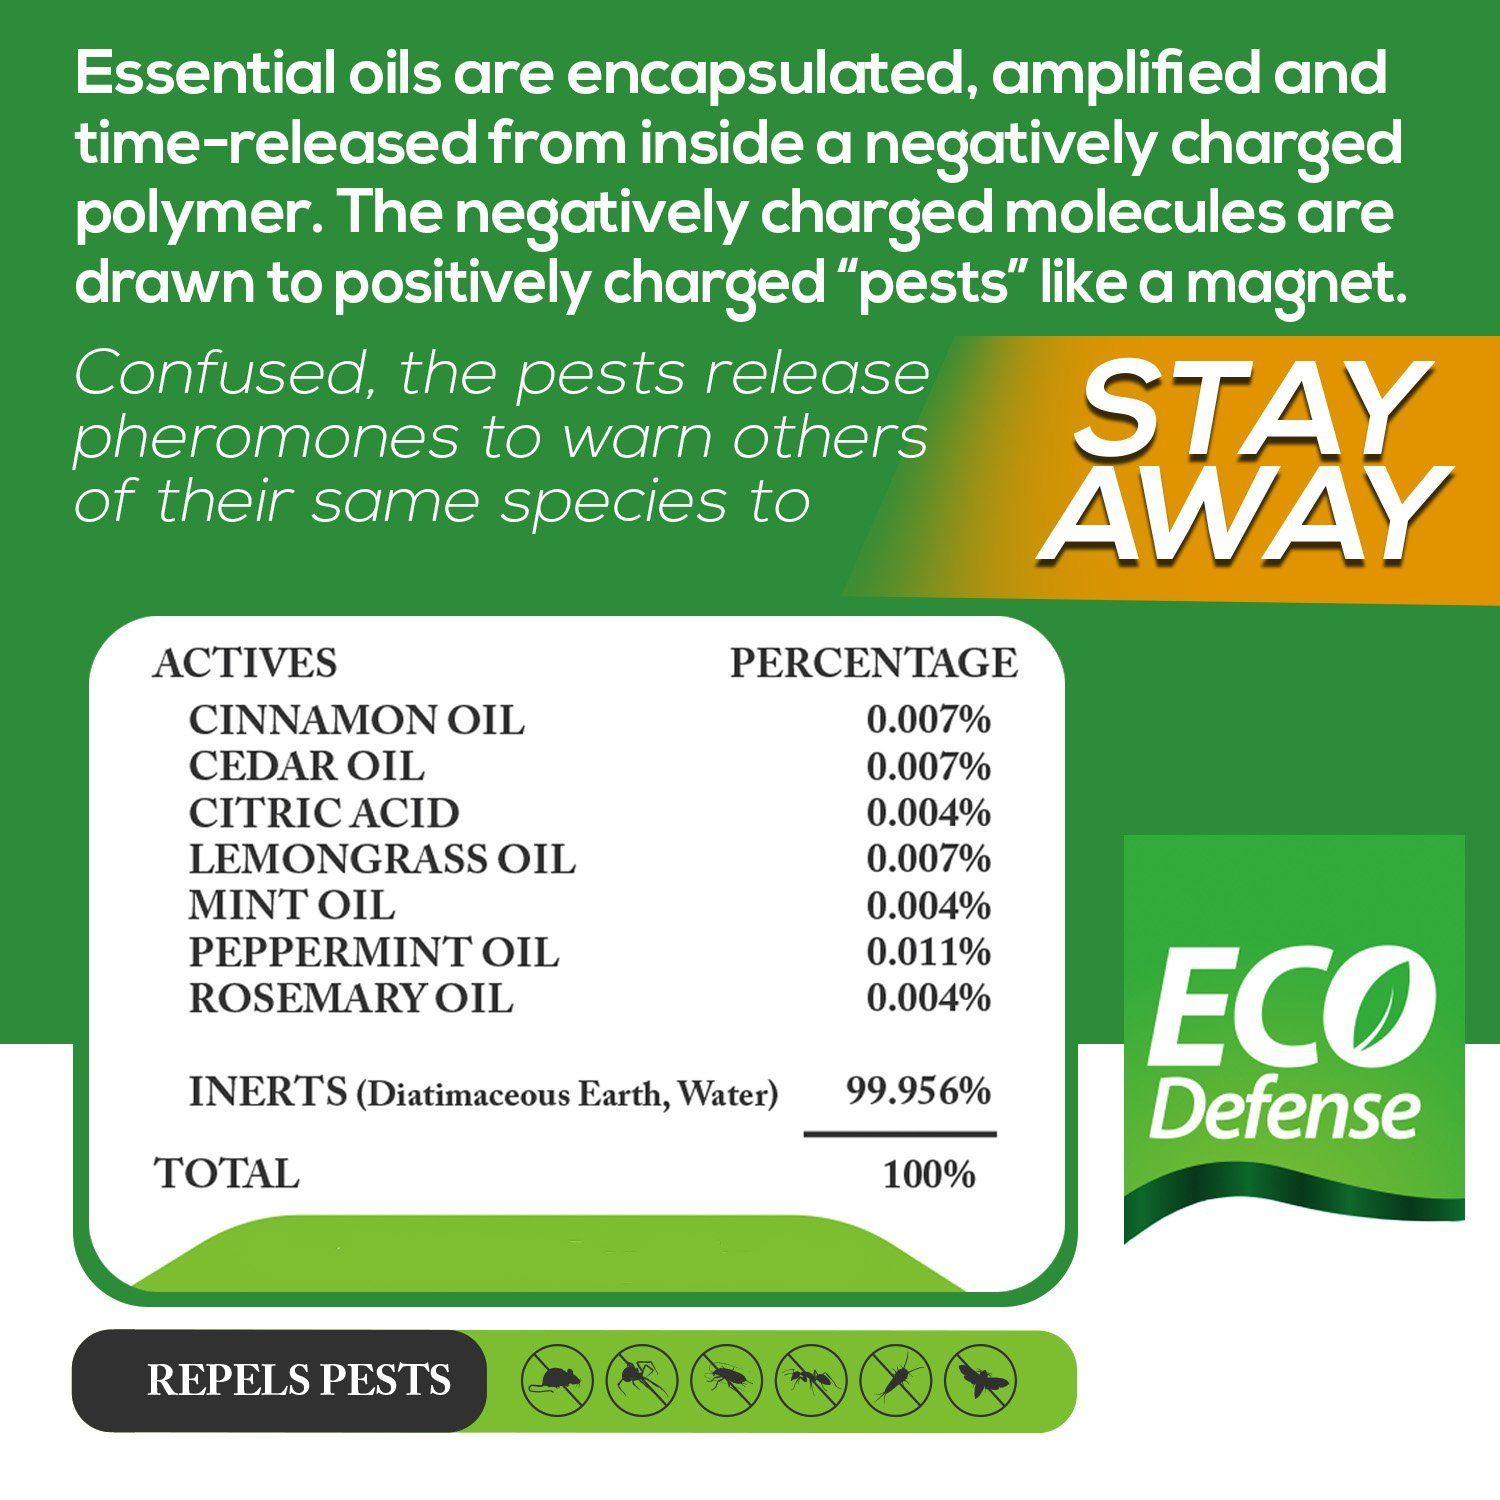 Eco Defense Pest Control Pouches - All Natural - Repels Rodents, Spiders, Roaches, Ants, Moths & Other Pests - 12 Pack - Best Mouse Trap Alternative by Eco Defense (Image #5)